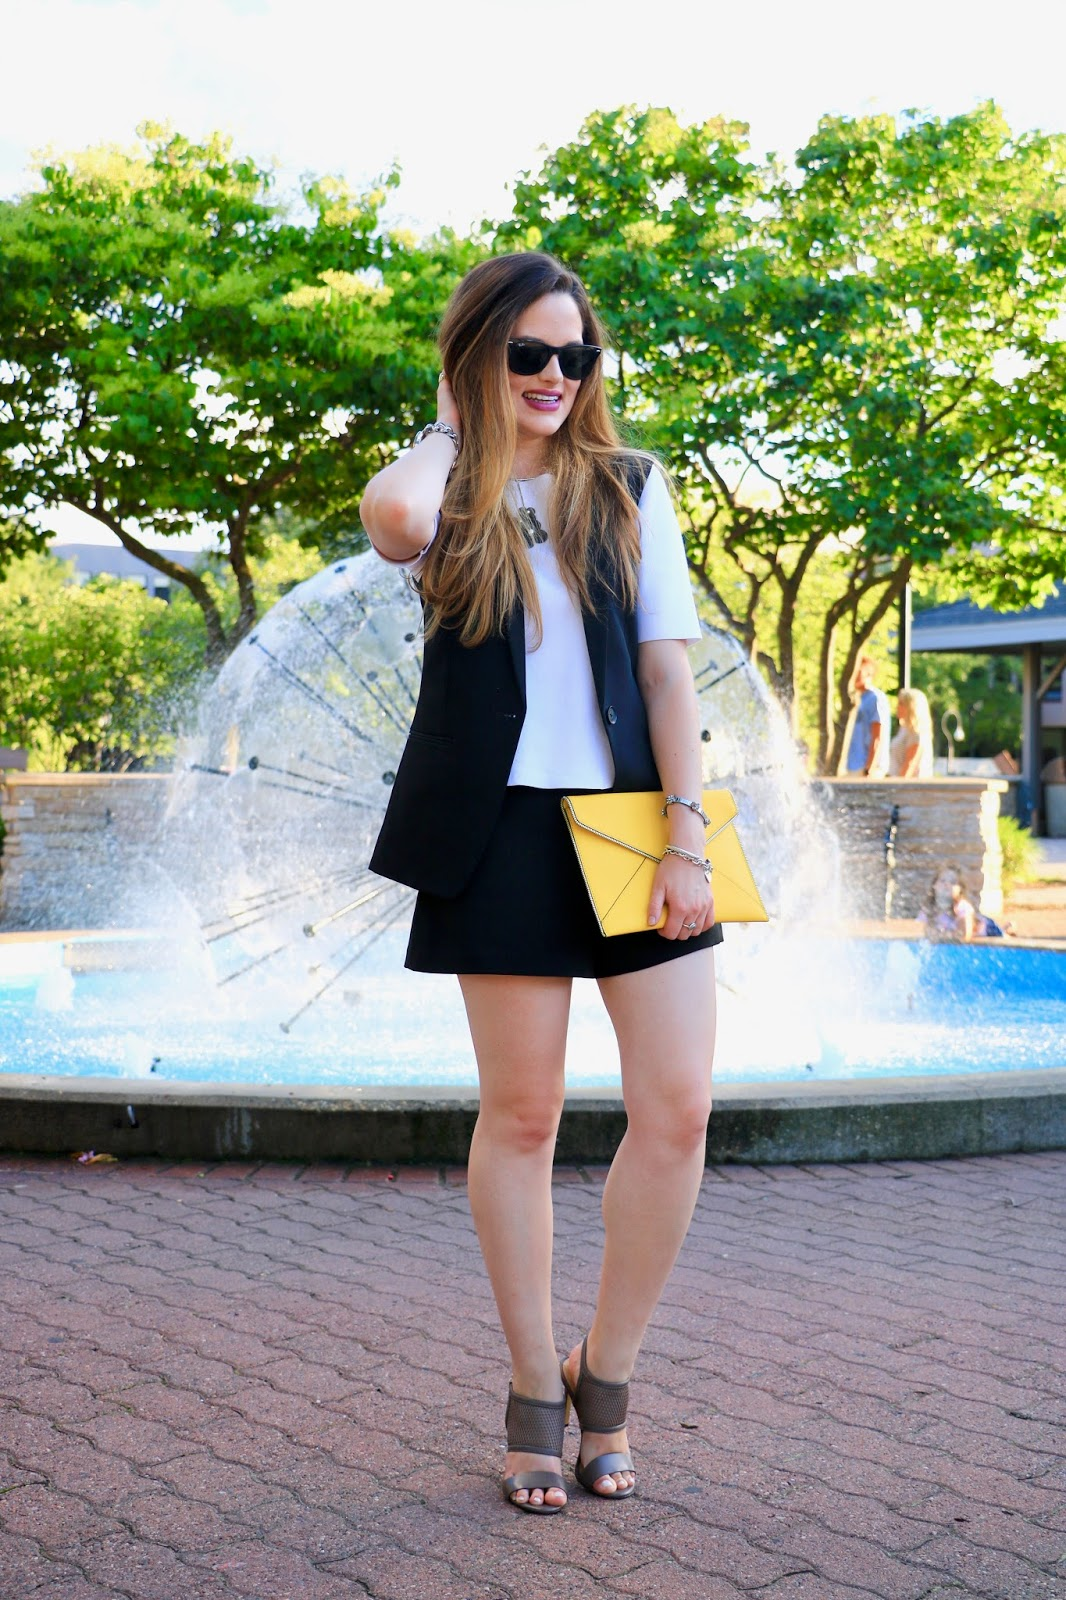 NYC fashion blogger Kathleen Harper of Kat's Fashion Fix showing how to wear shorts